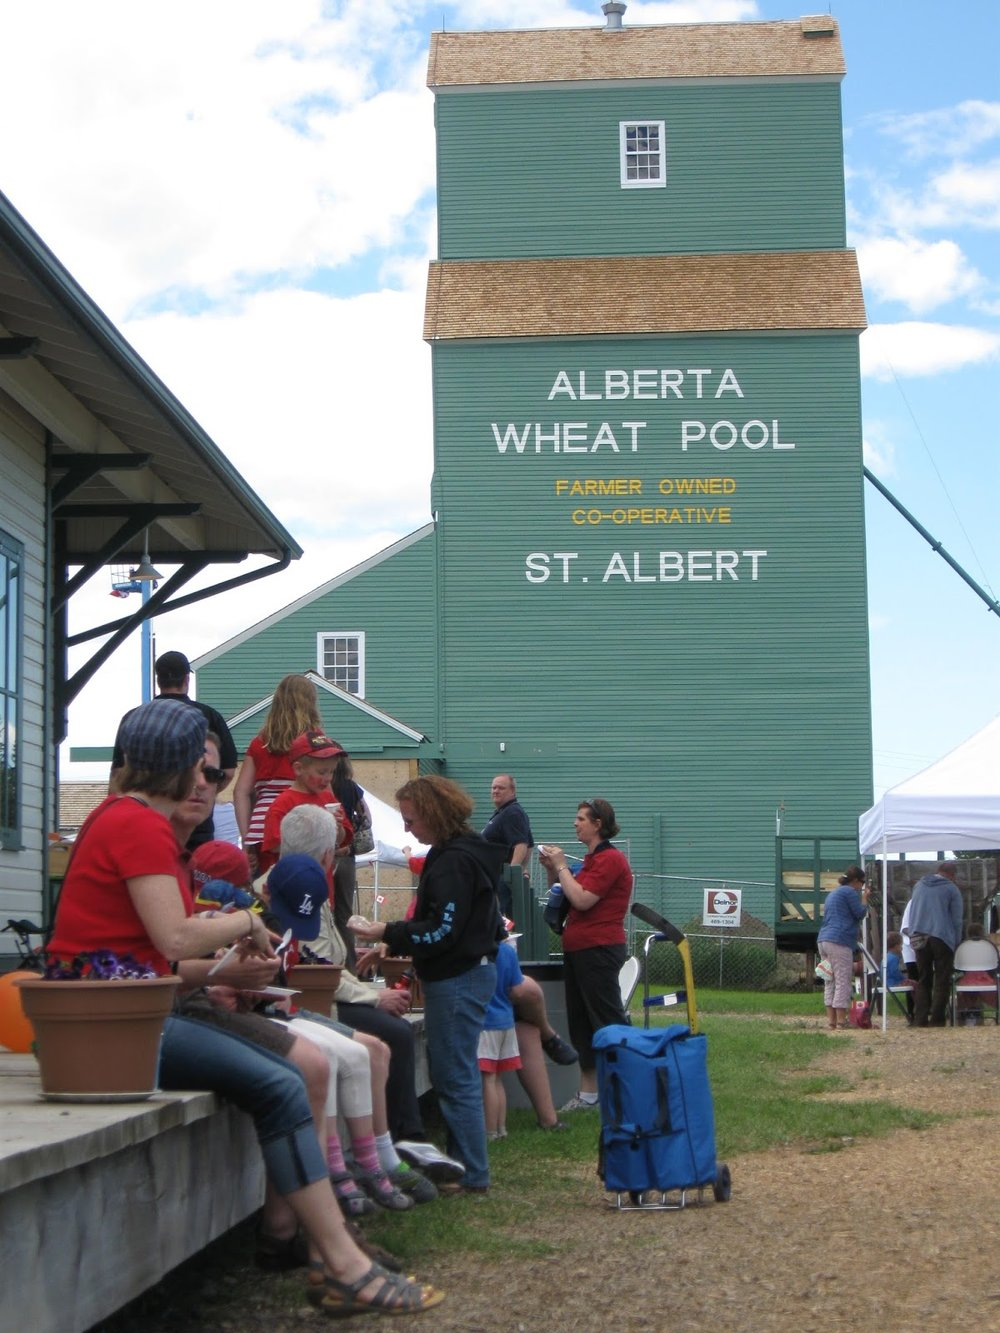 stalbert-Visitors-to-the-newly-restored-grain-elevators-on-Canada-Day.jpg